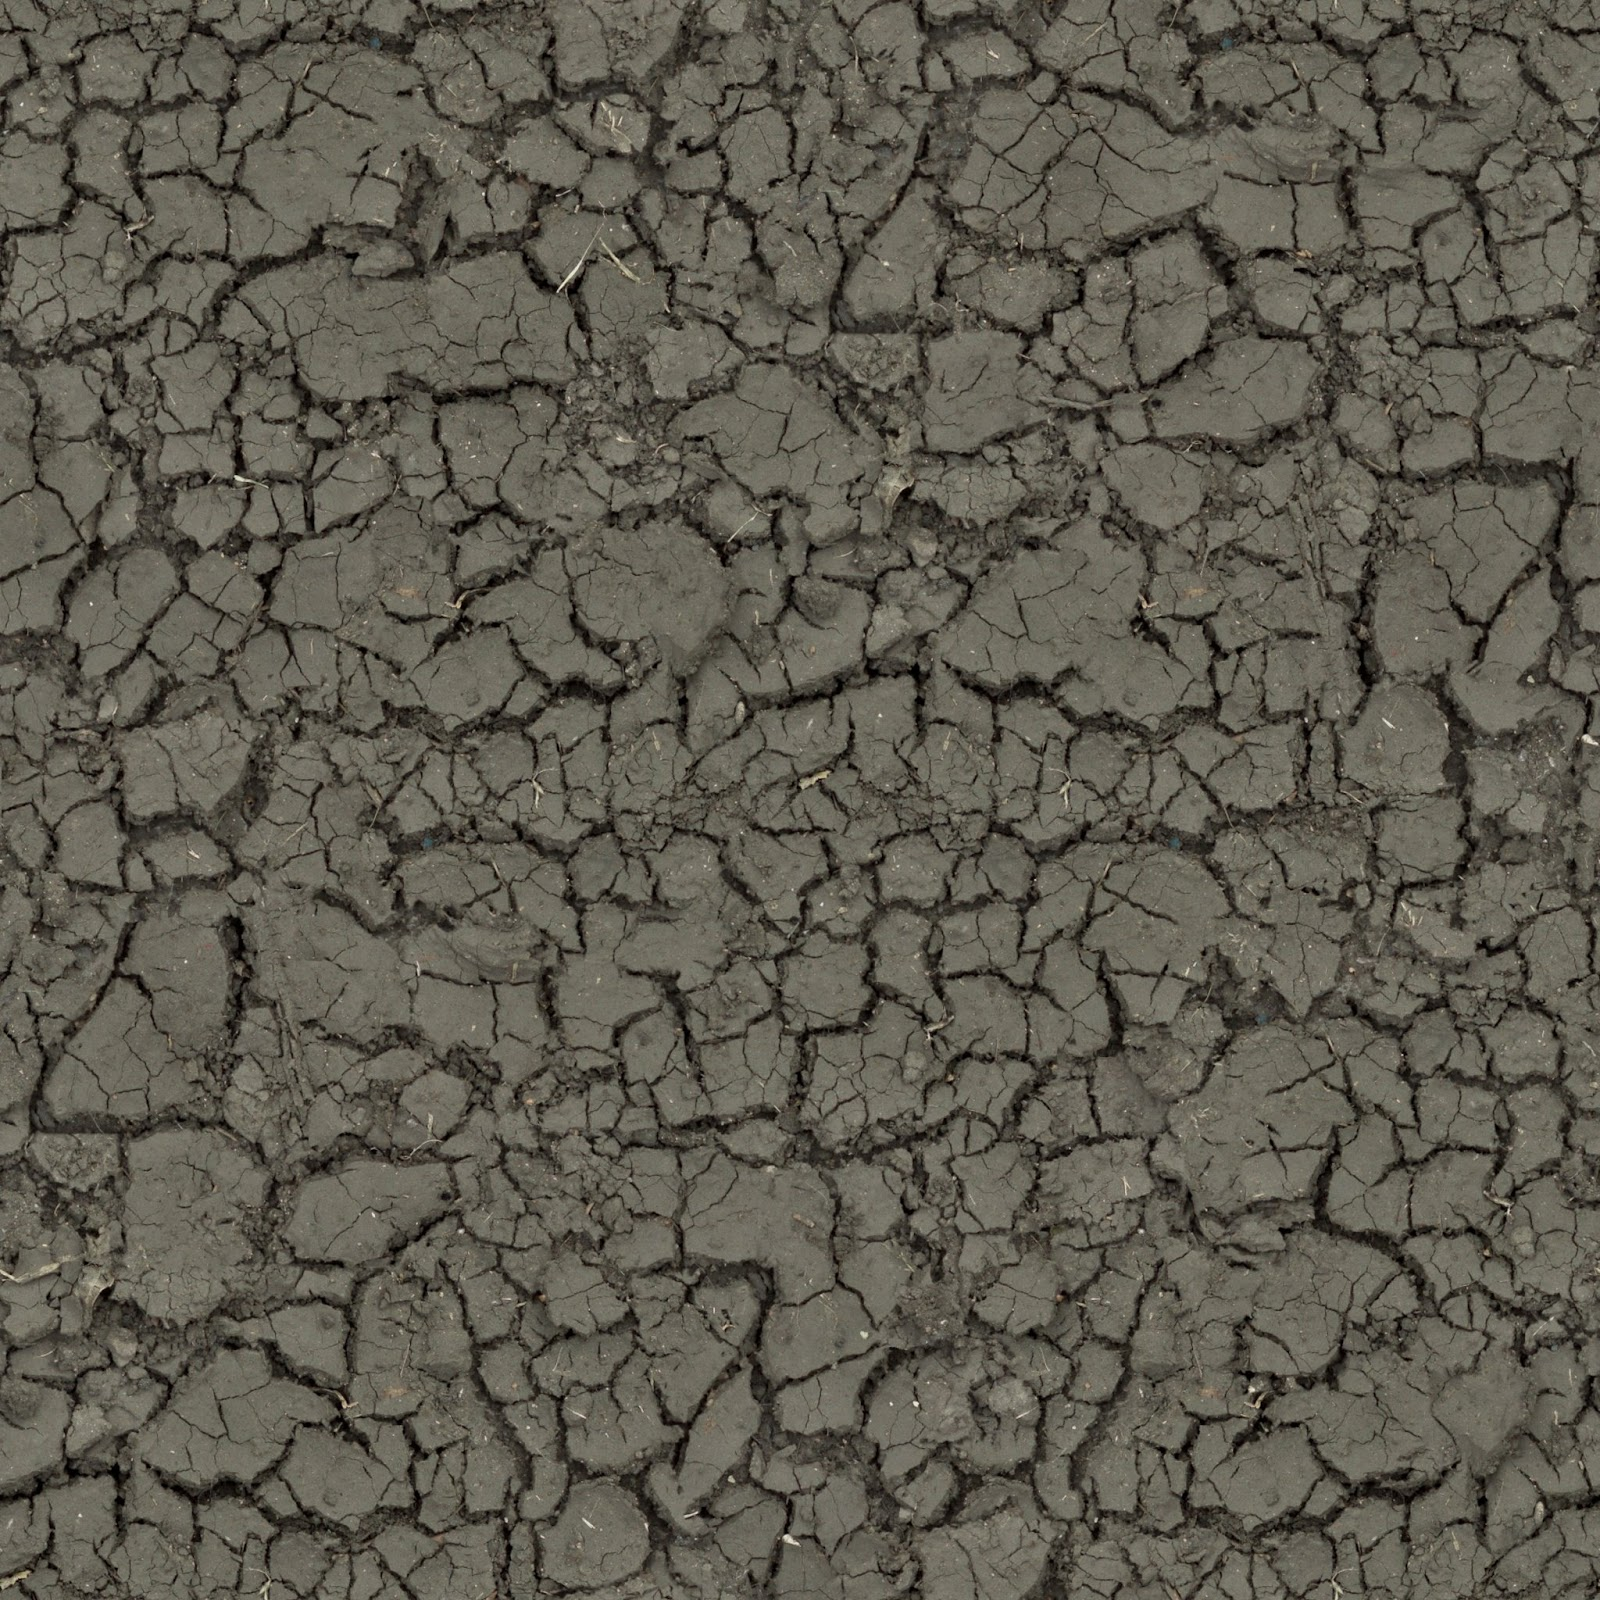 Mud cracked dirt soil ground seamless texture 2048x2048